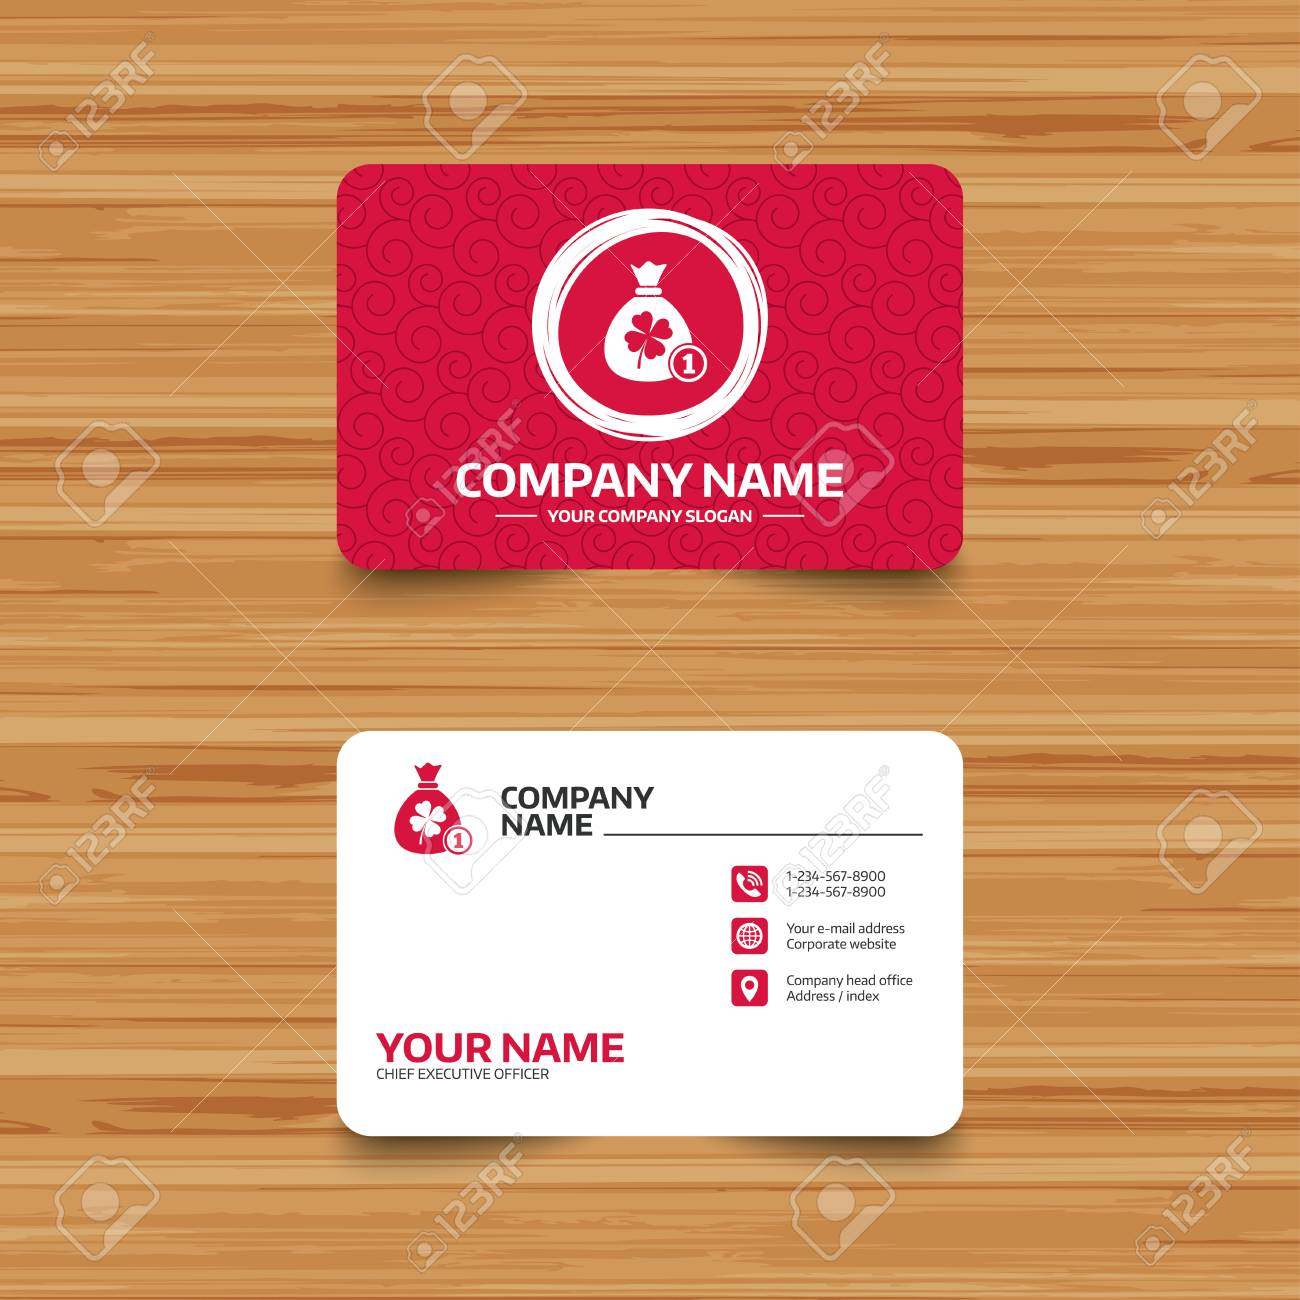 Business Card Template With Texture. Money Bag With Clover And ...